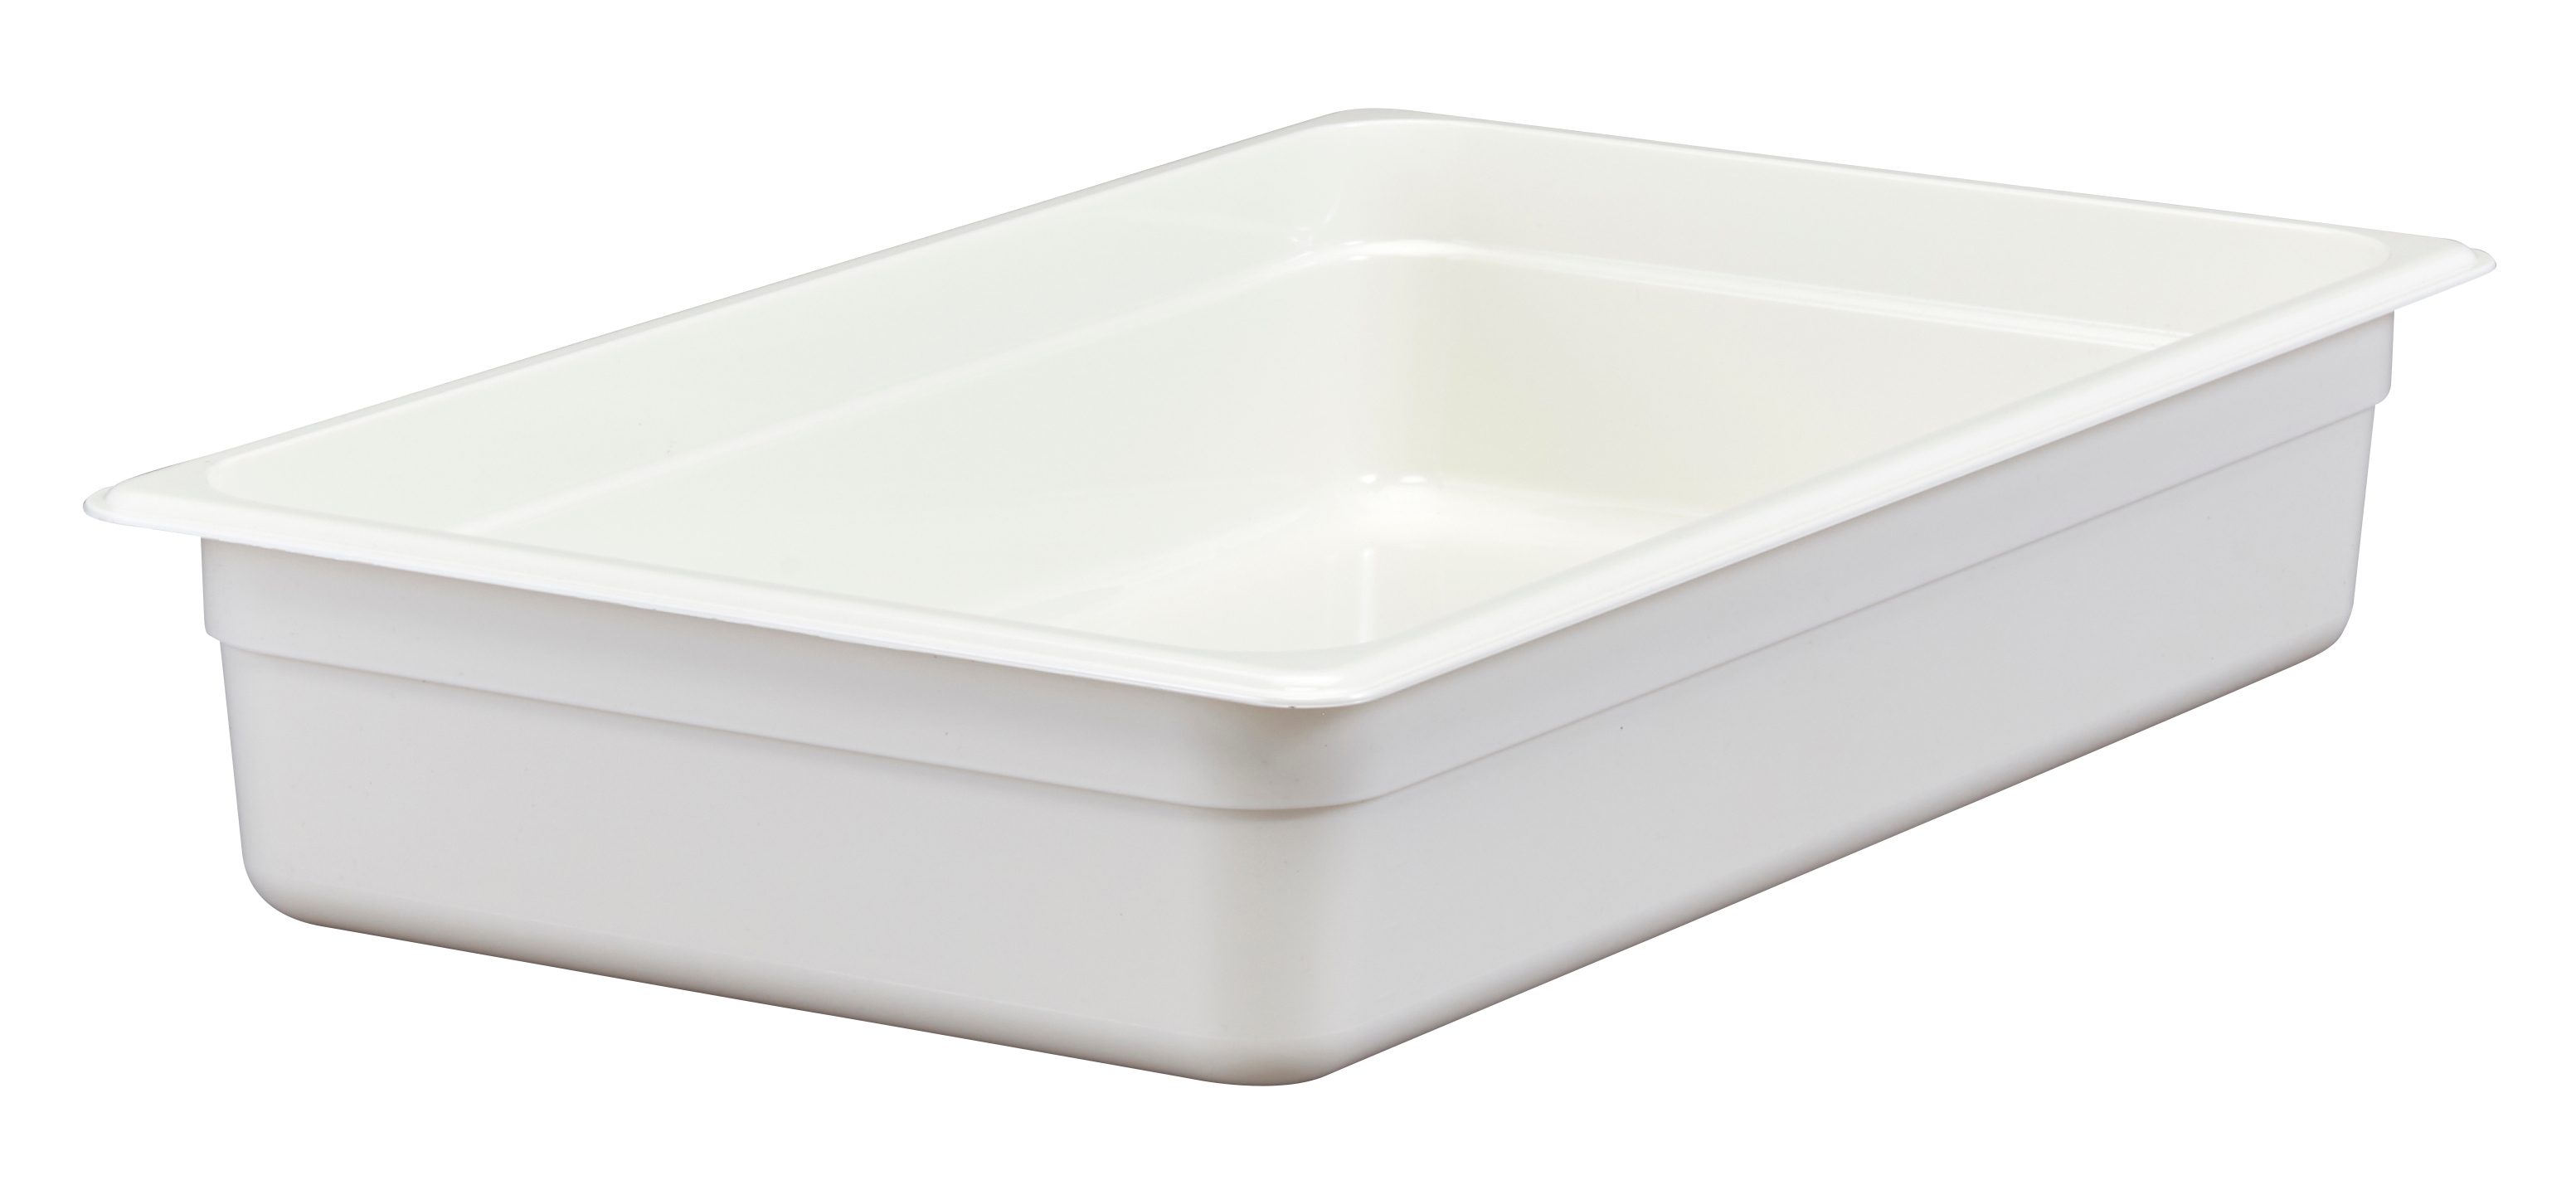 Cambro 14CW148 food/beverage storage container